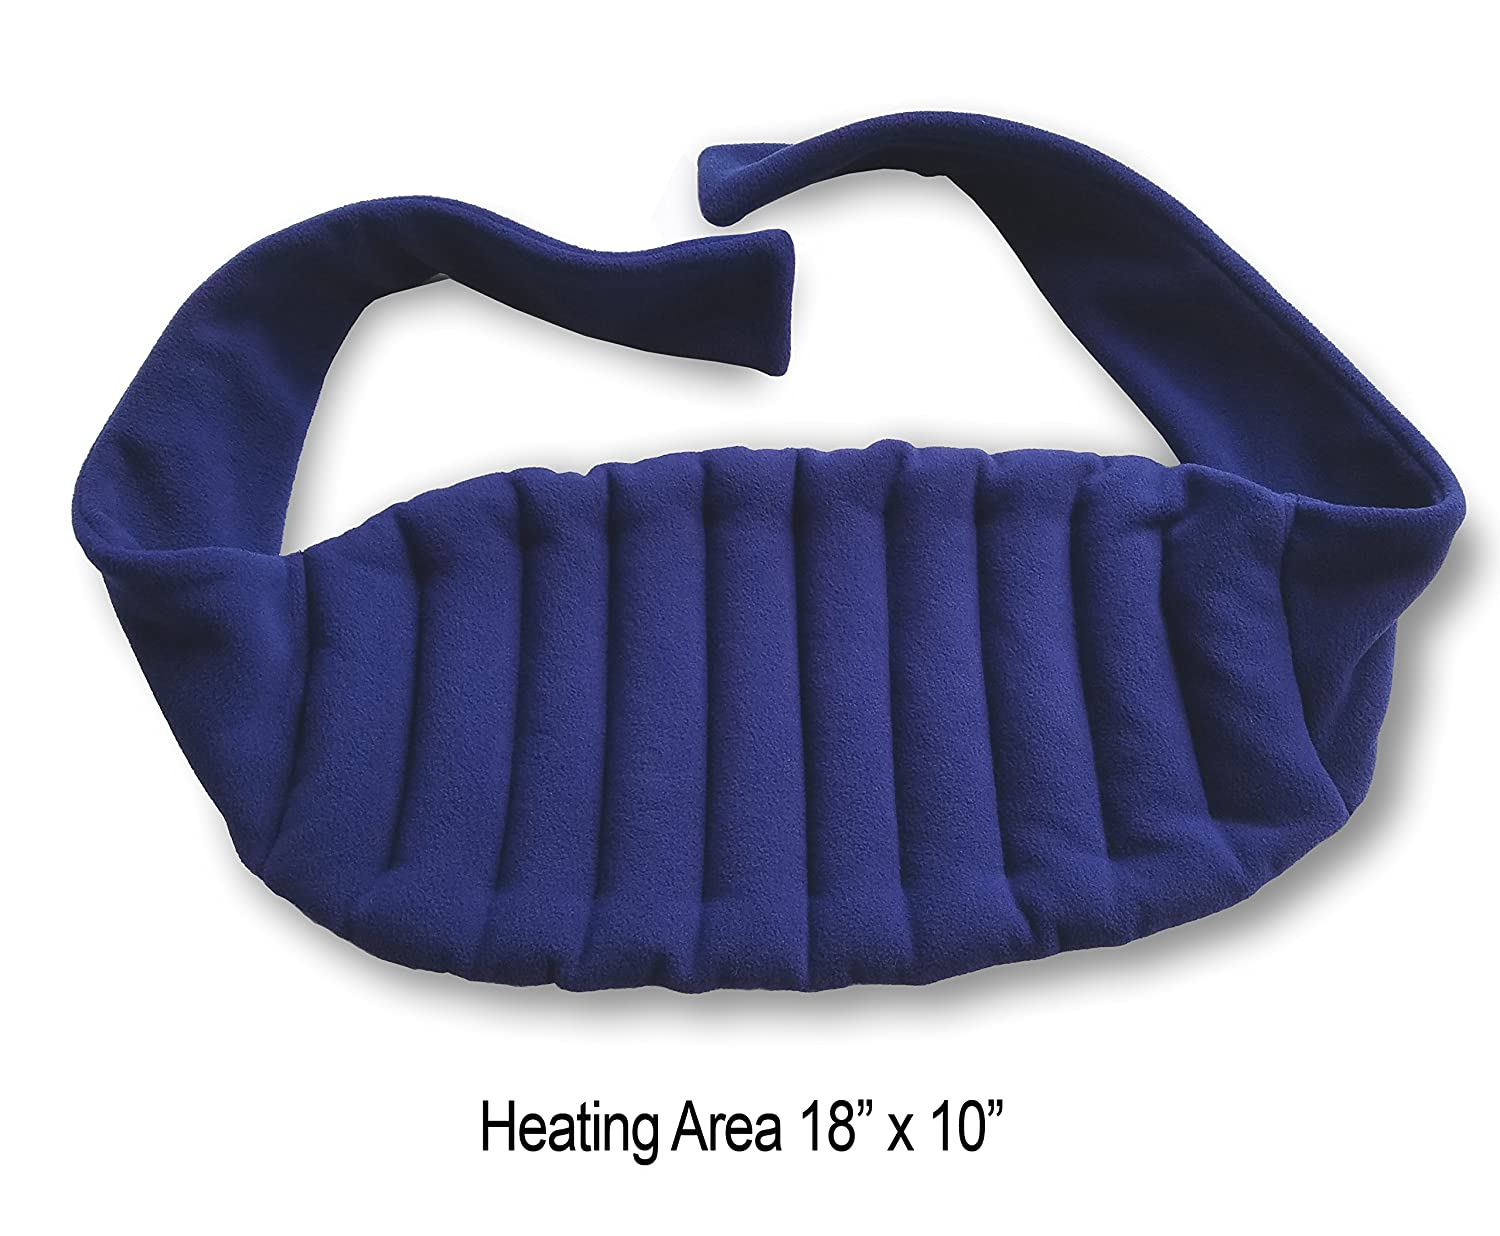 """Sunny Bay Lower Back and Shoulder Heat Wrap with Strap, 10""""x18"""" Heating Area, Microwave Hot/Cold Pad, Reusable, Portable, Navy Blue"""